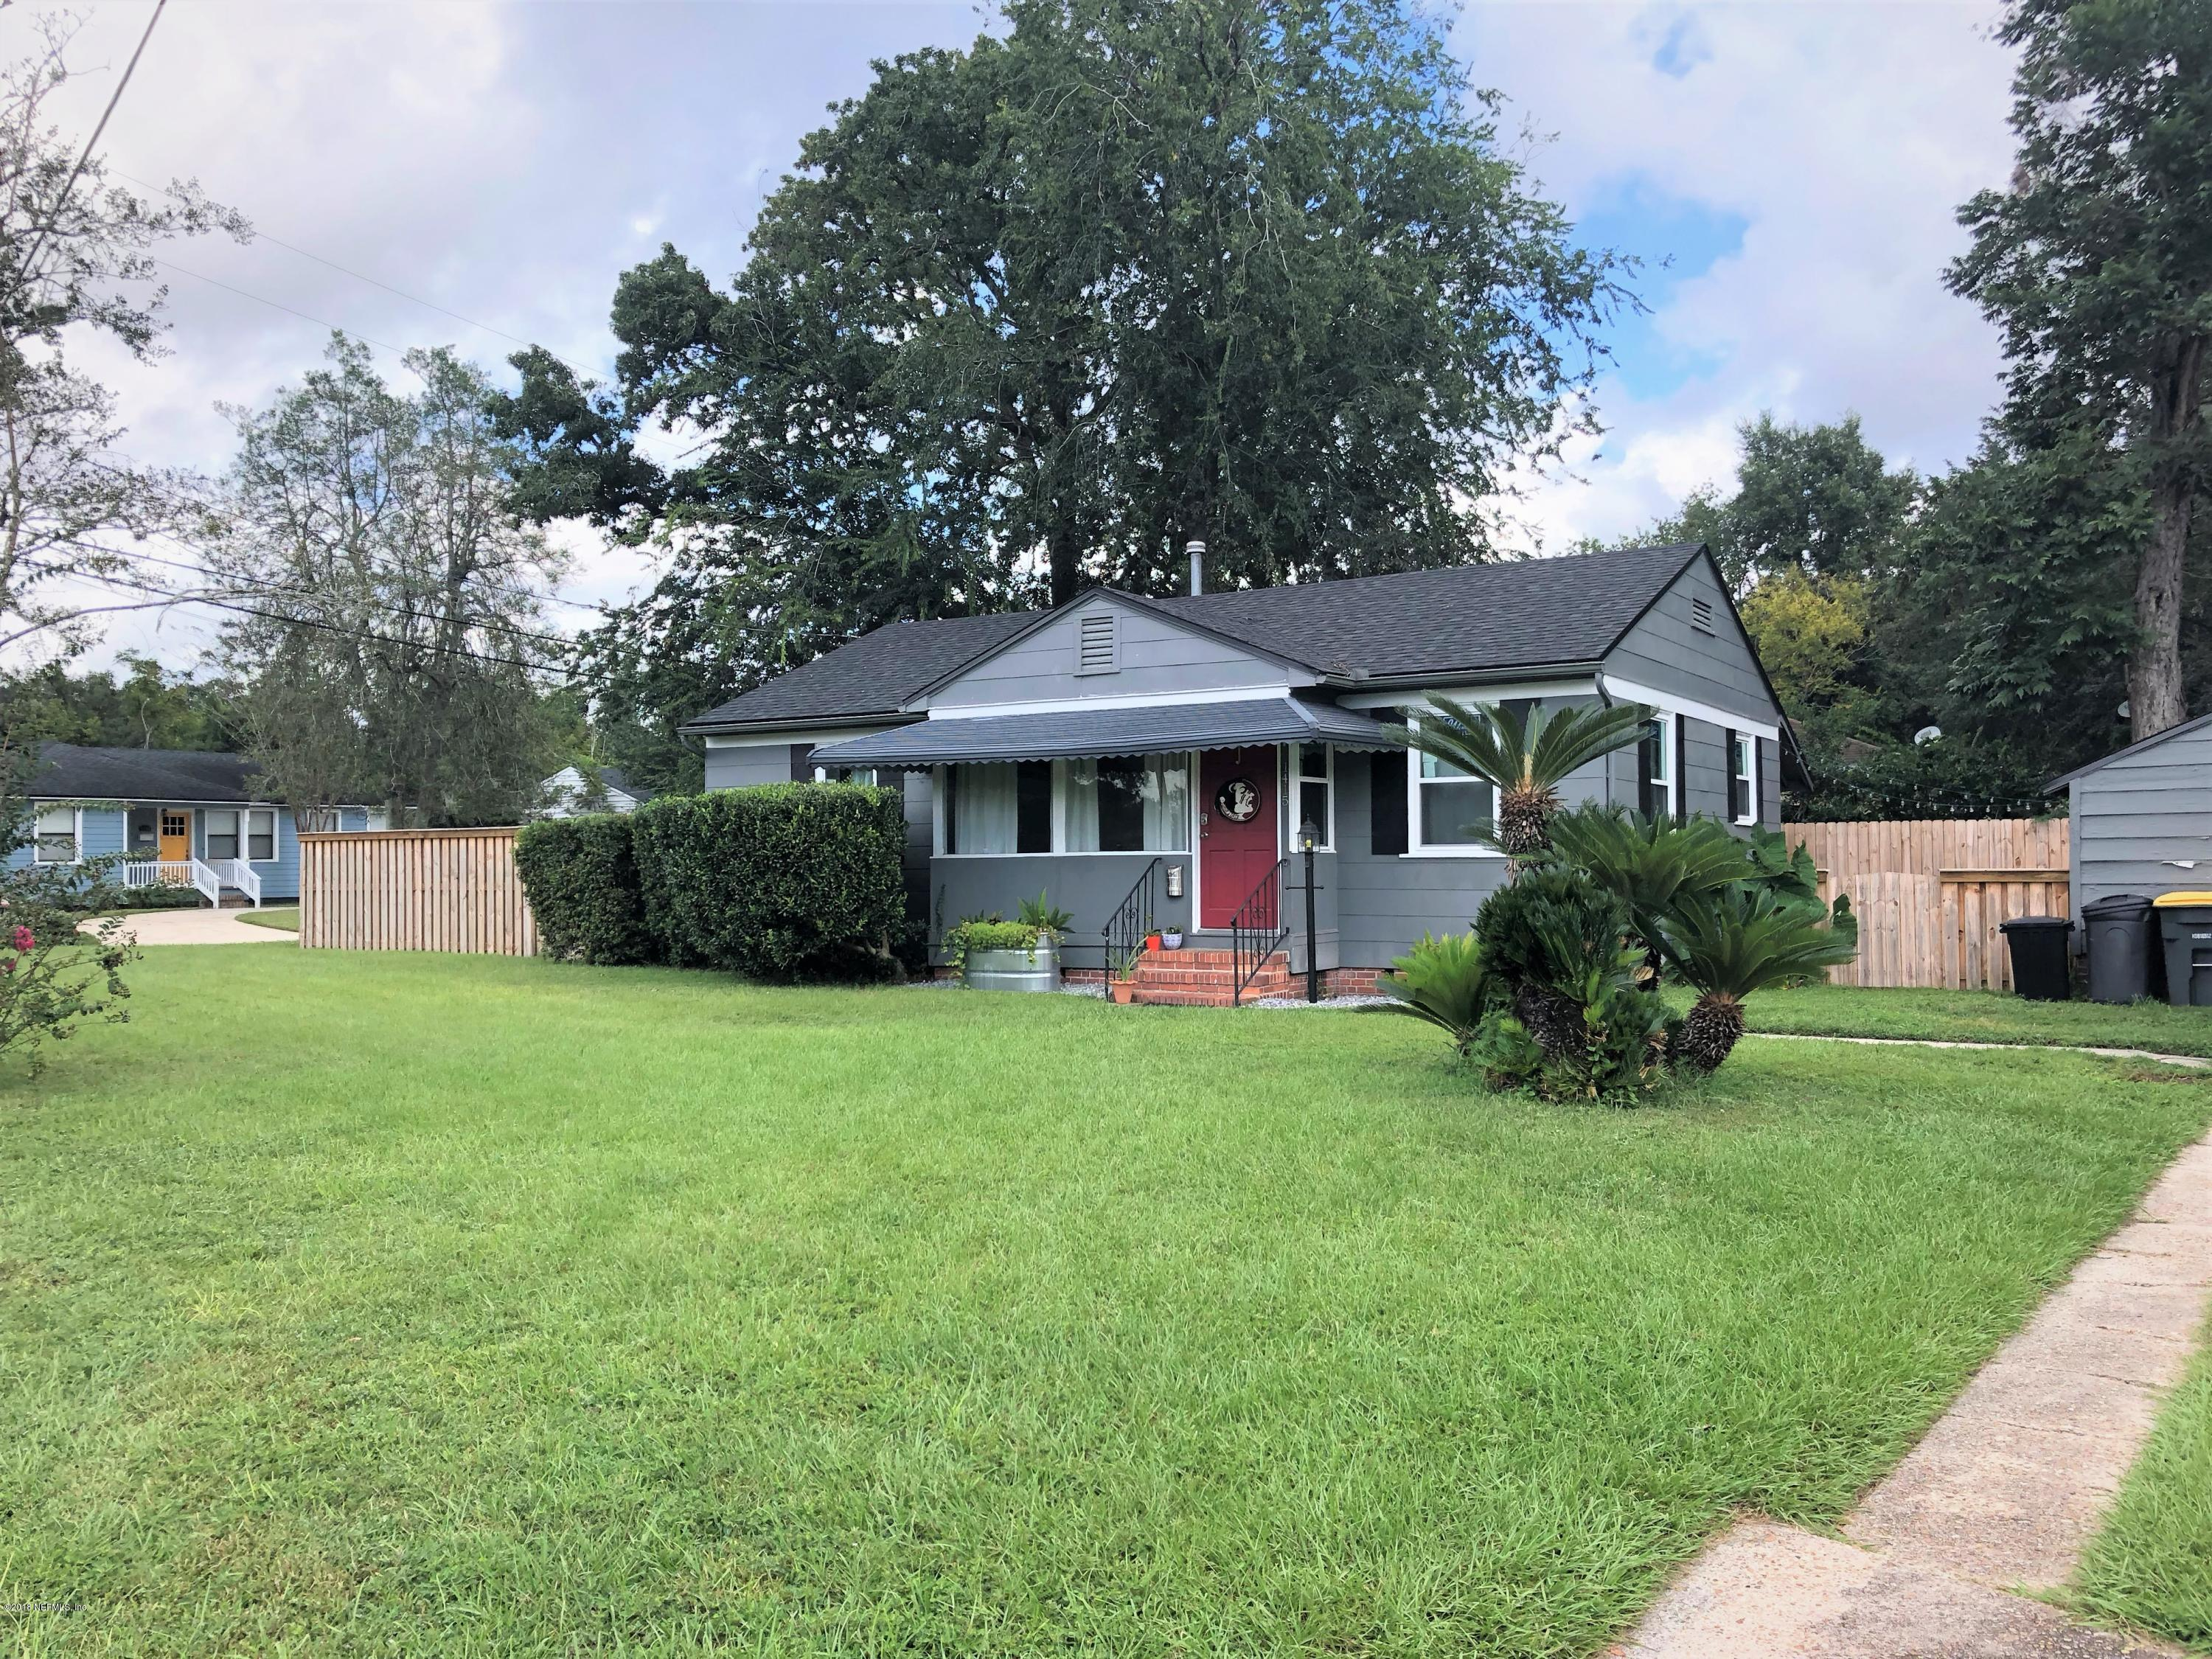 1415 PINE GROVE, JACKSONVILLE, FLORIDA 32205, 2 Bedrooms Bedrooms, ,1 BathroomBathrooms,Residential - single family,For sale,PINE GROVE,958960